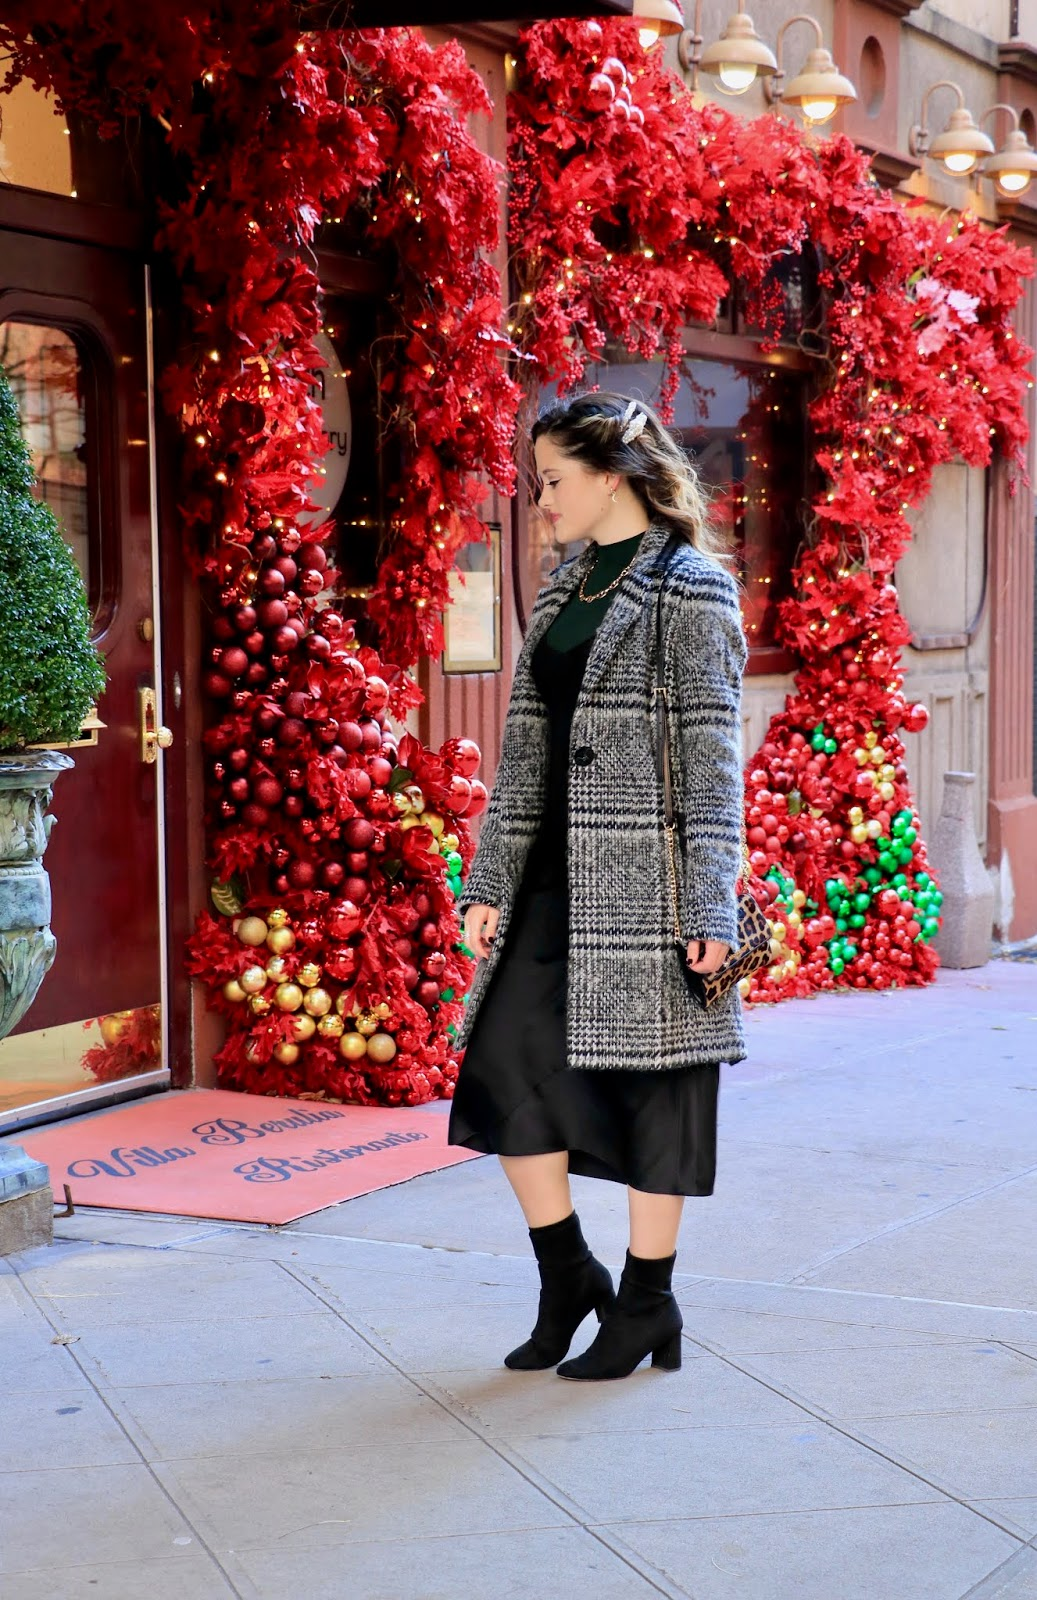 Fashion blogger Kathleen Harper wearing a holiday party outfit in NYC.